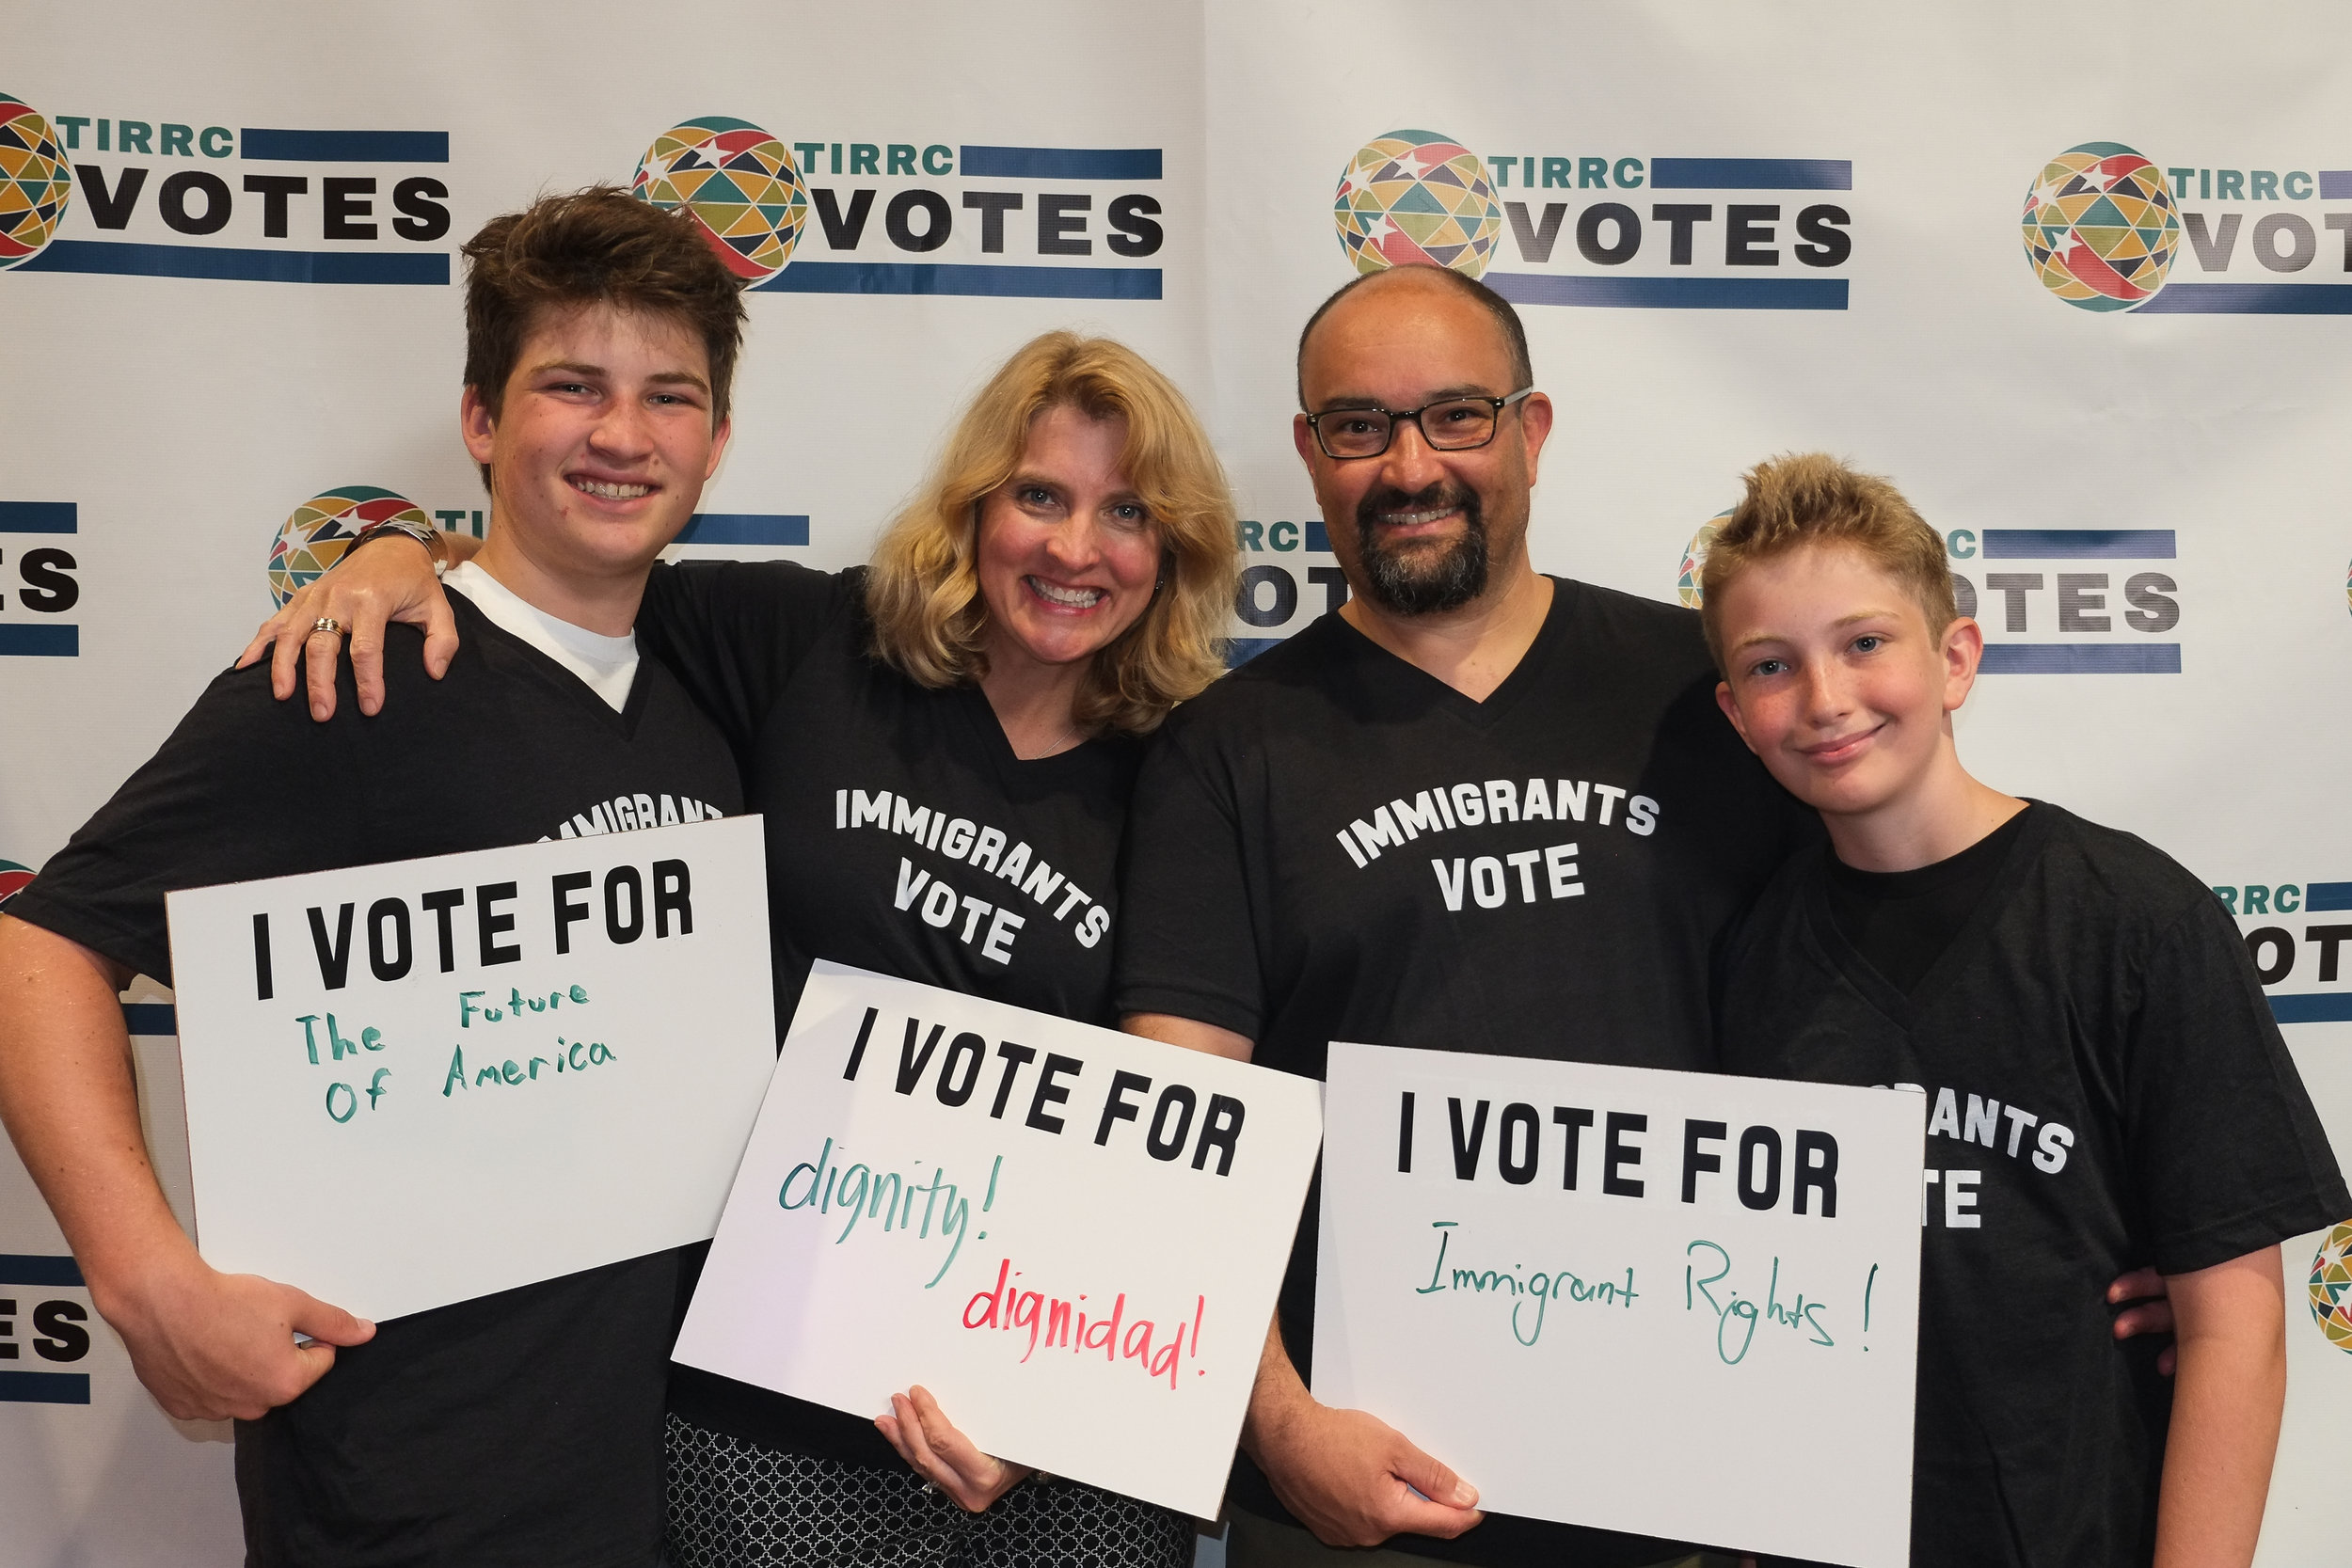 TIRRCVotes-PhotoBooth-5.jpg